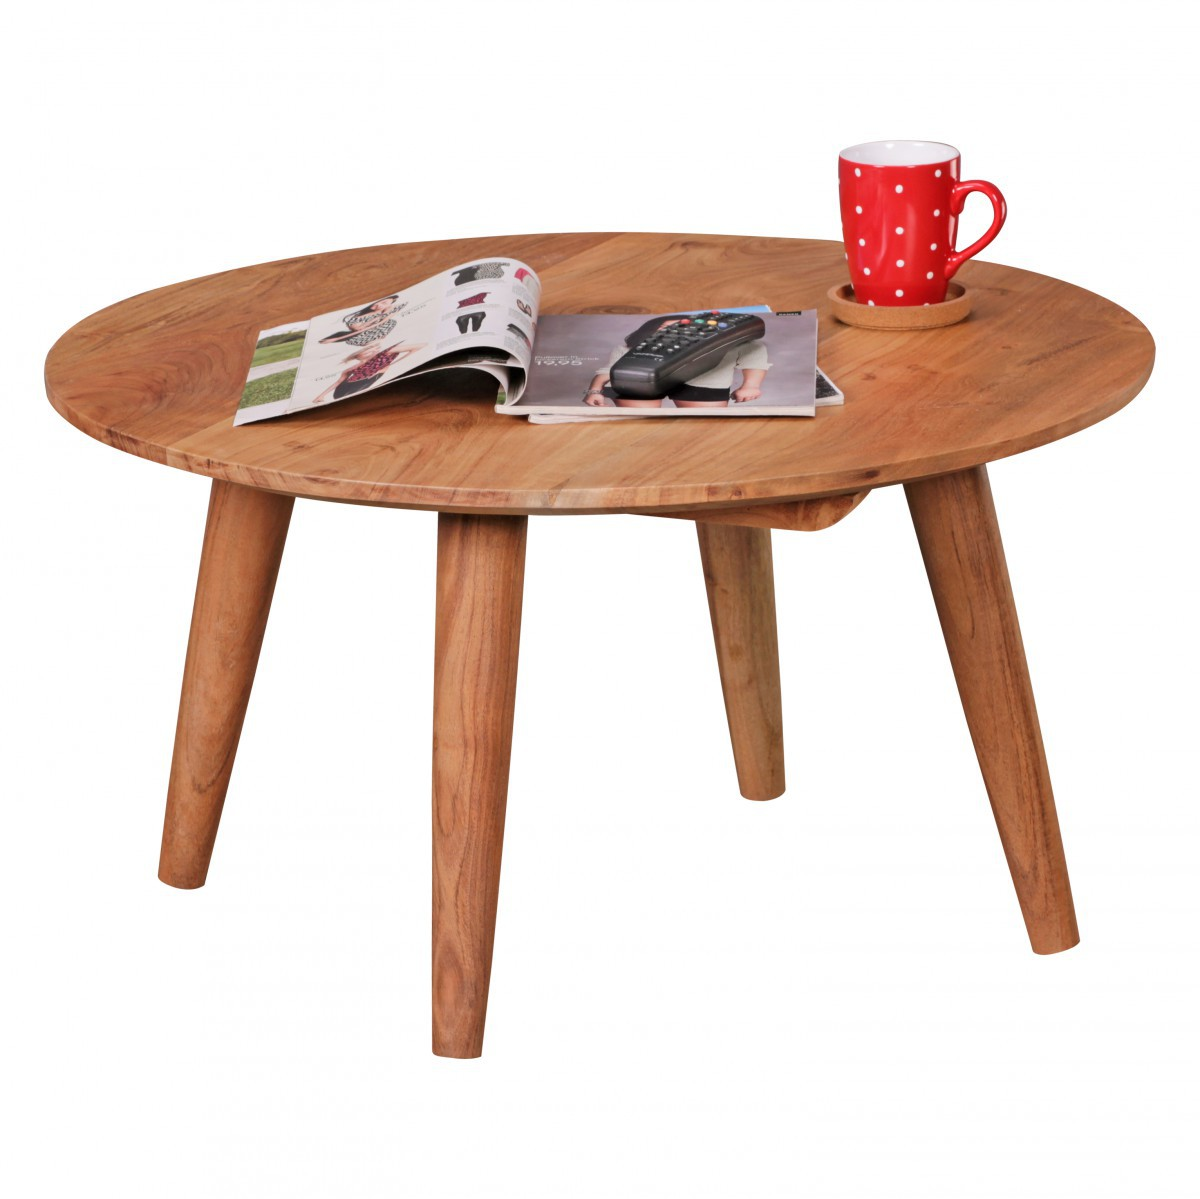 finebuy table basse en bois massif acacia table basse